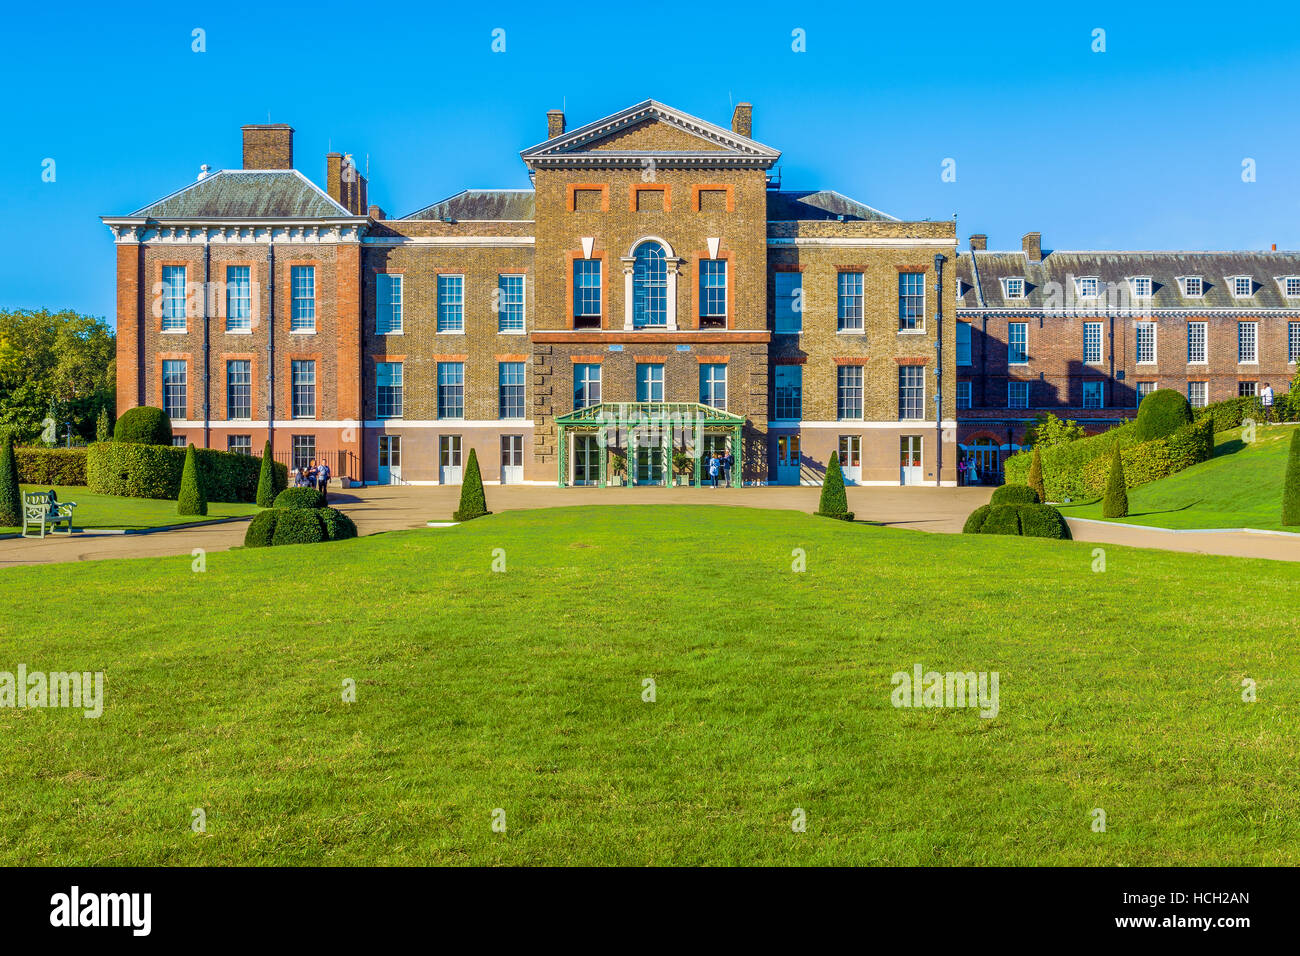 Kensington Palace in London, UK - Stock Image